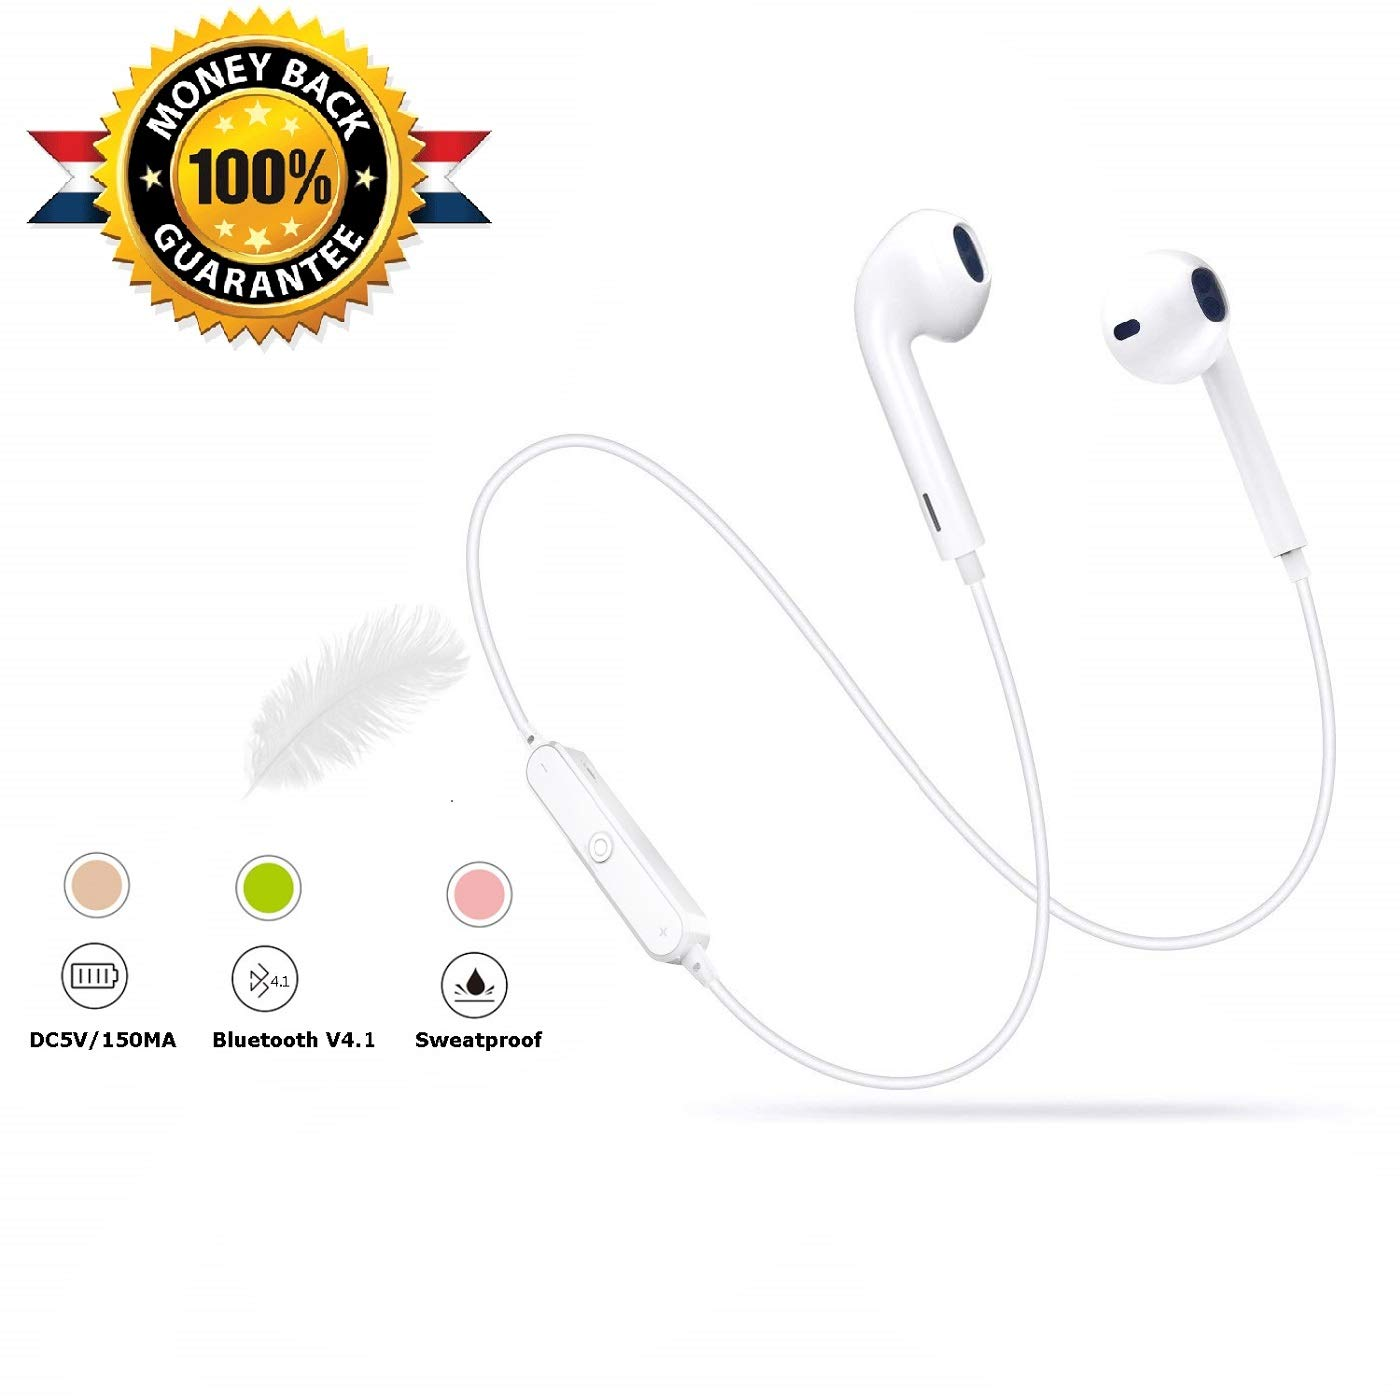 Bluetooth Headphones, Wireless Bluetooth Headphones Best Wireless Sport Earphones with Mic for Sports With Mic, Compatible iPhone XS/XS Max/X/8/7 Samsung Galaxy S9 S8 S7. BTVE